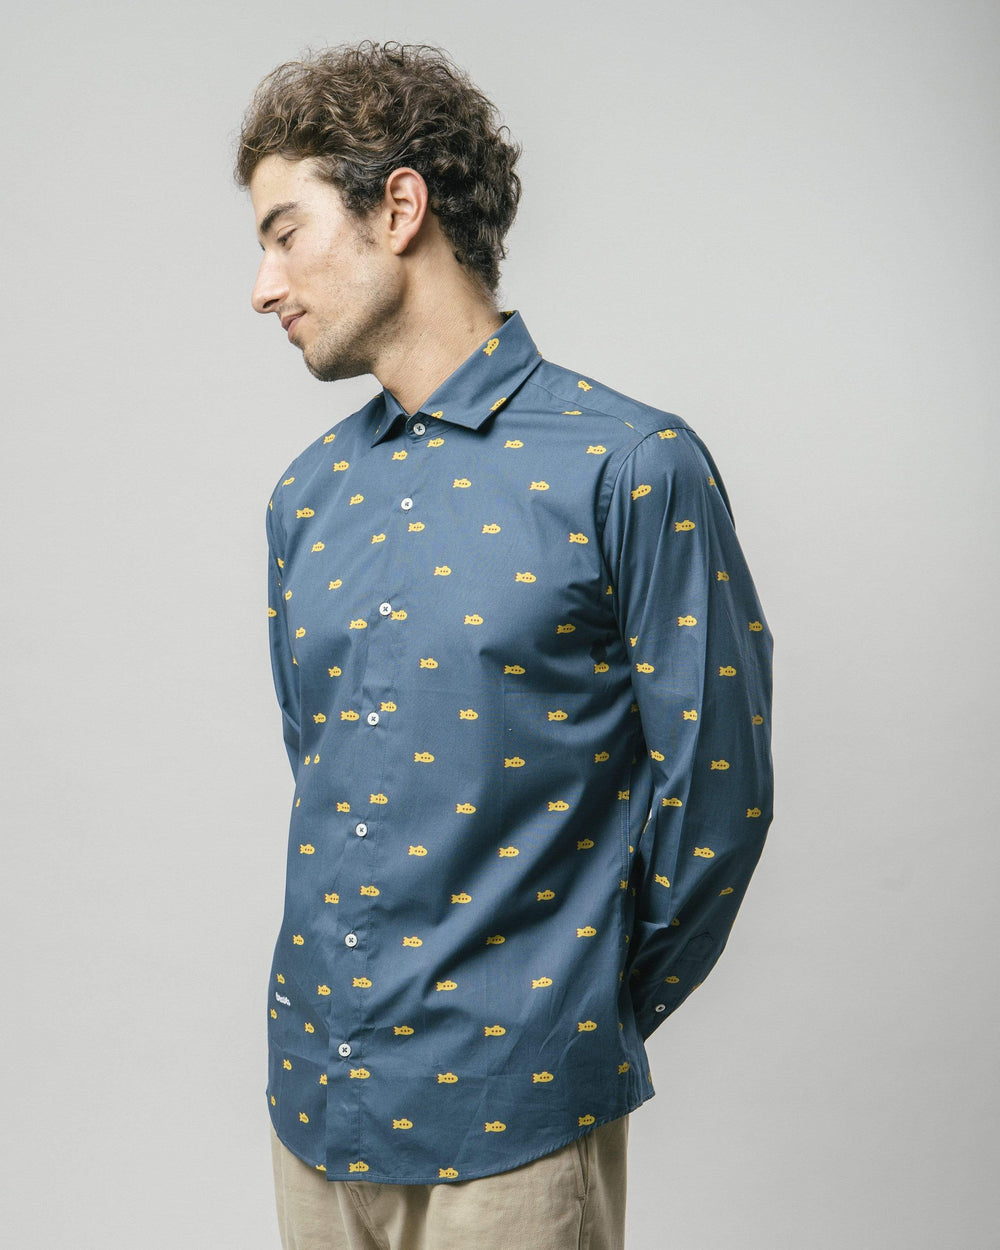 Brava Fabrics Shirts Yellow Submarine Printed Shirt